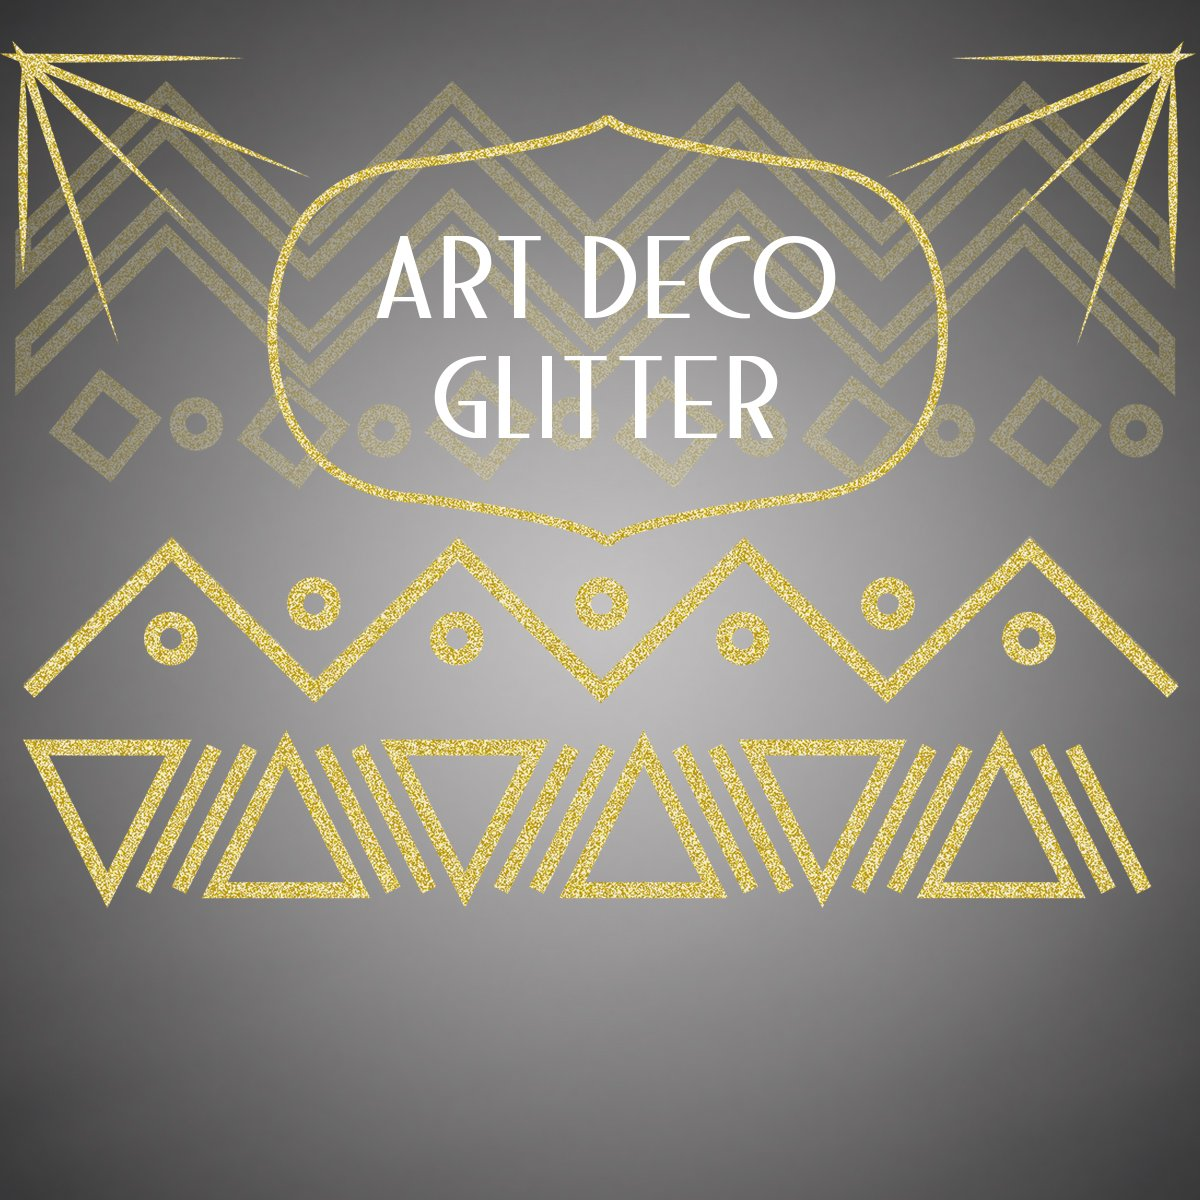 Art deco glitter patterns graphics graphics on for Deco graphic